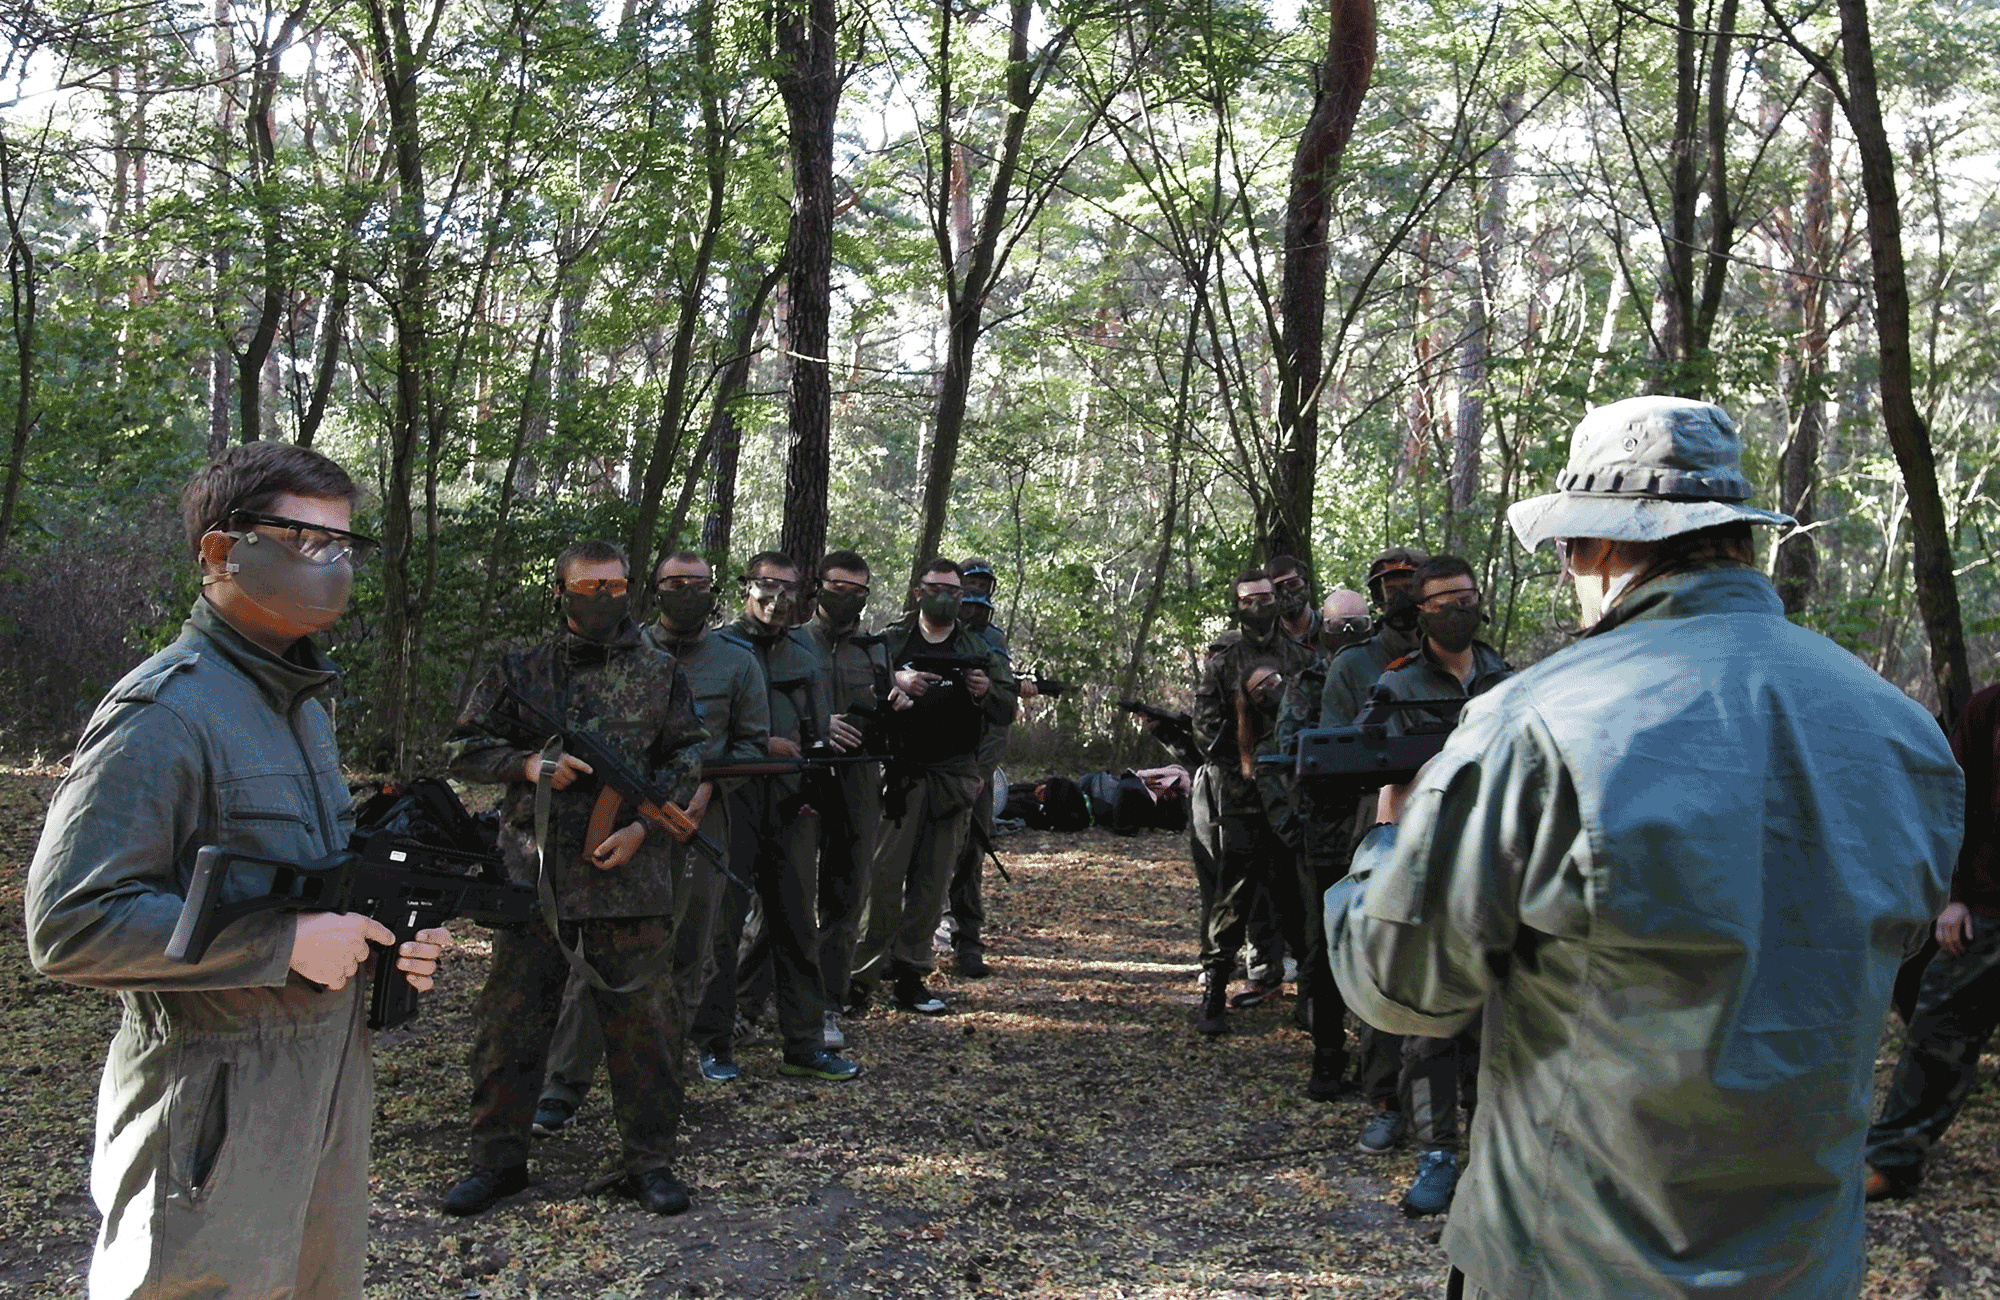 Action Shooting Game in the forest for bachelor groups visiting warsaw